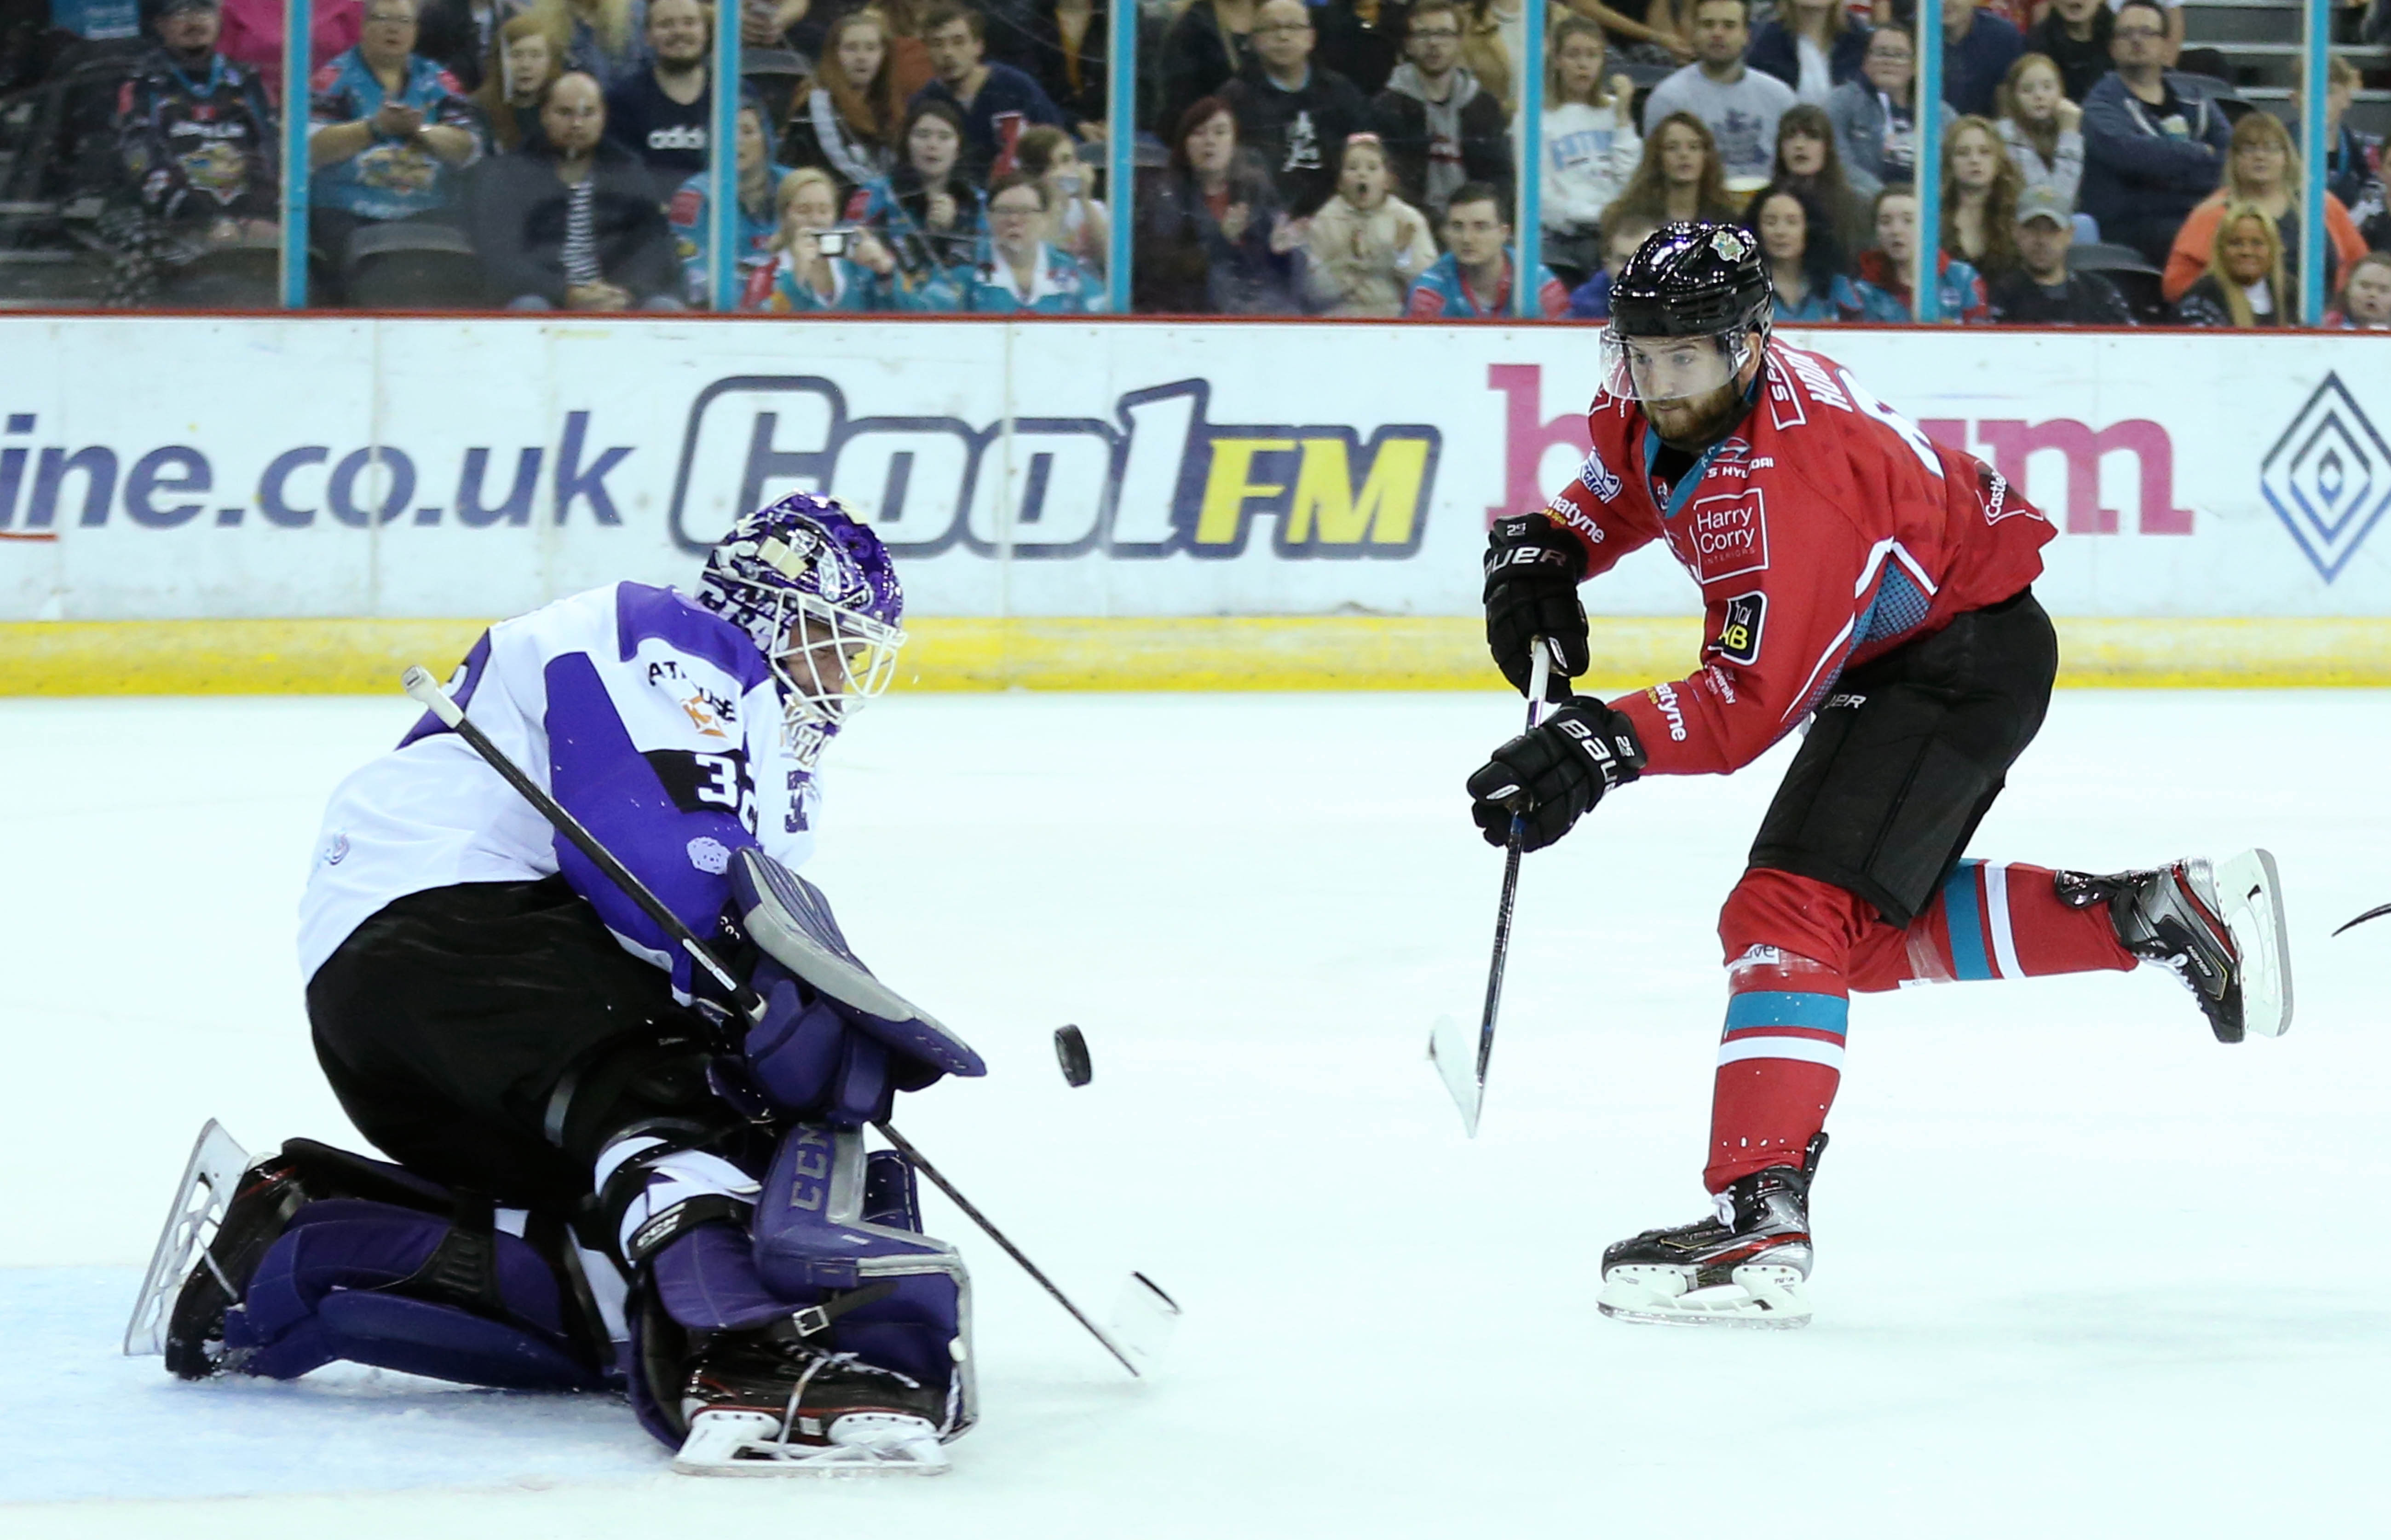 Giants Vs Clan_009